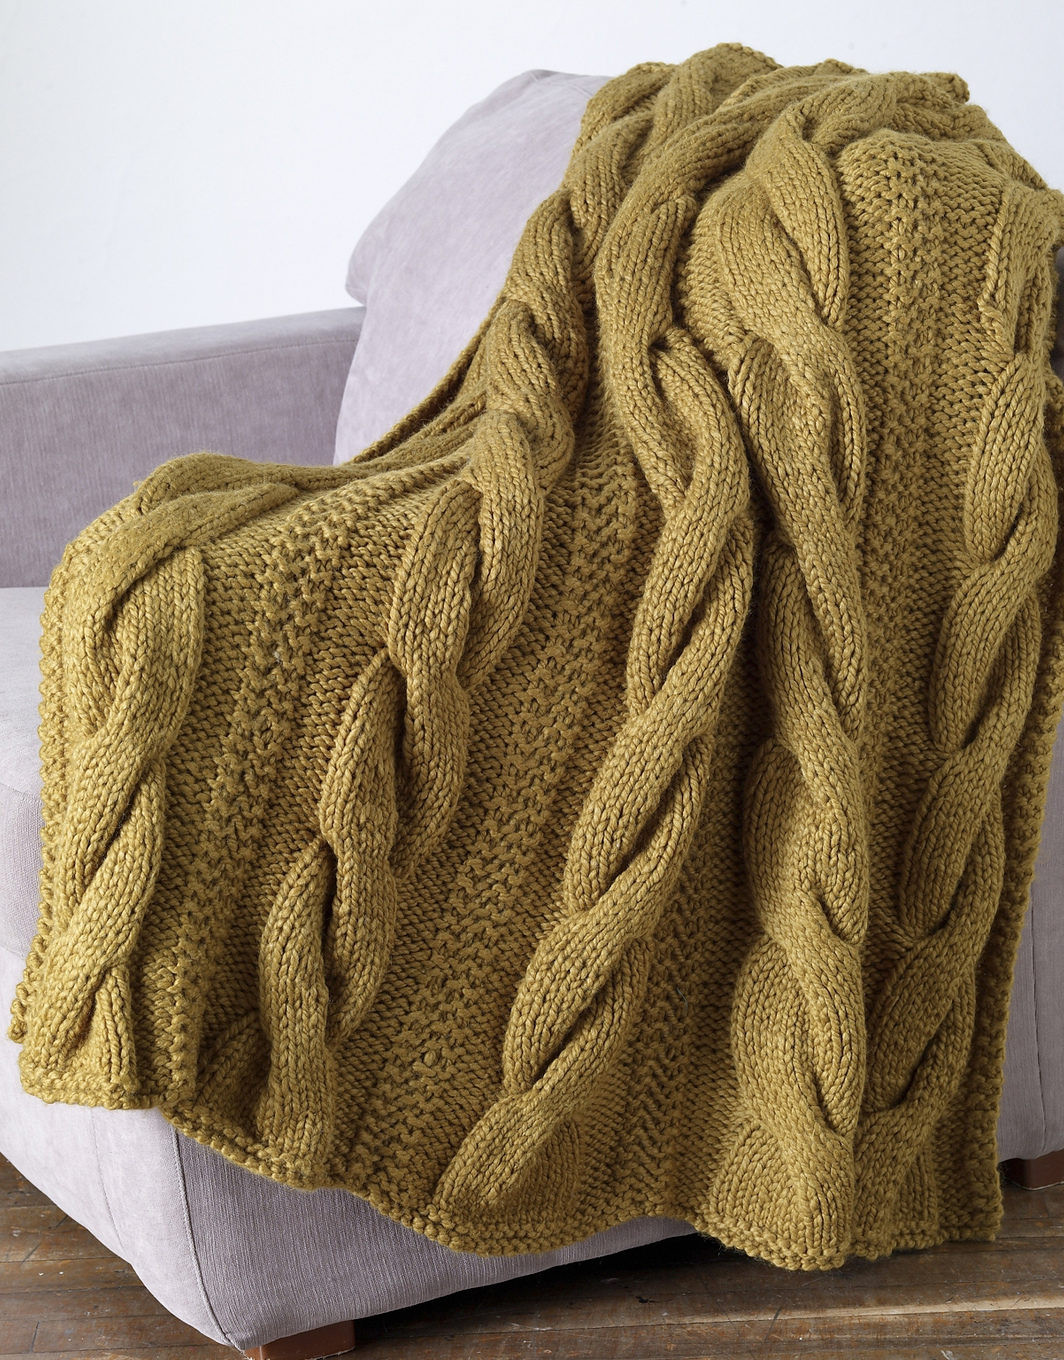 Blanket Patterns Best Of Afghans In Sections Knitting Patterns Of Fresh 49 Pics Blanket Patterns